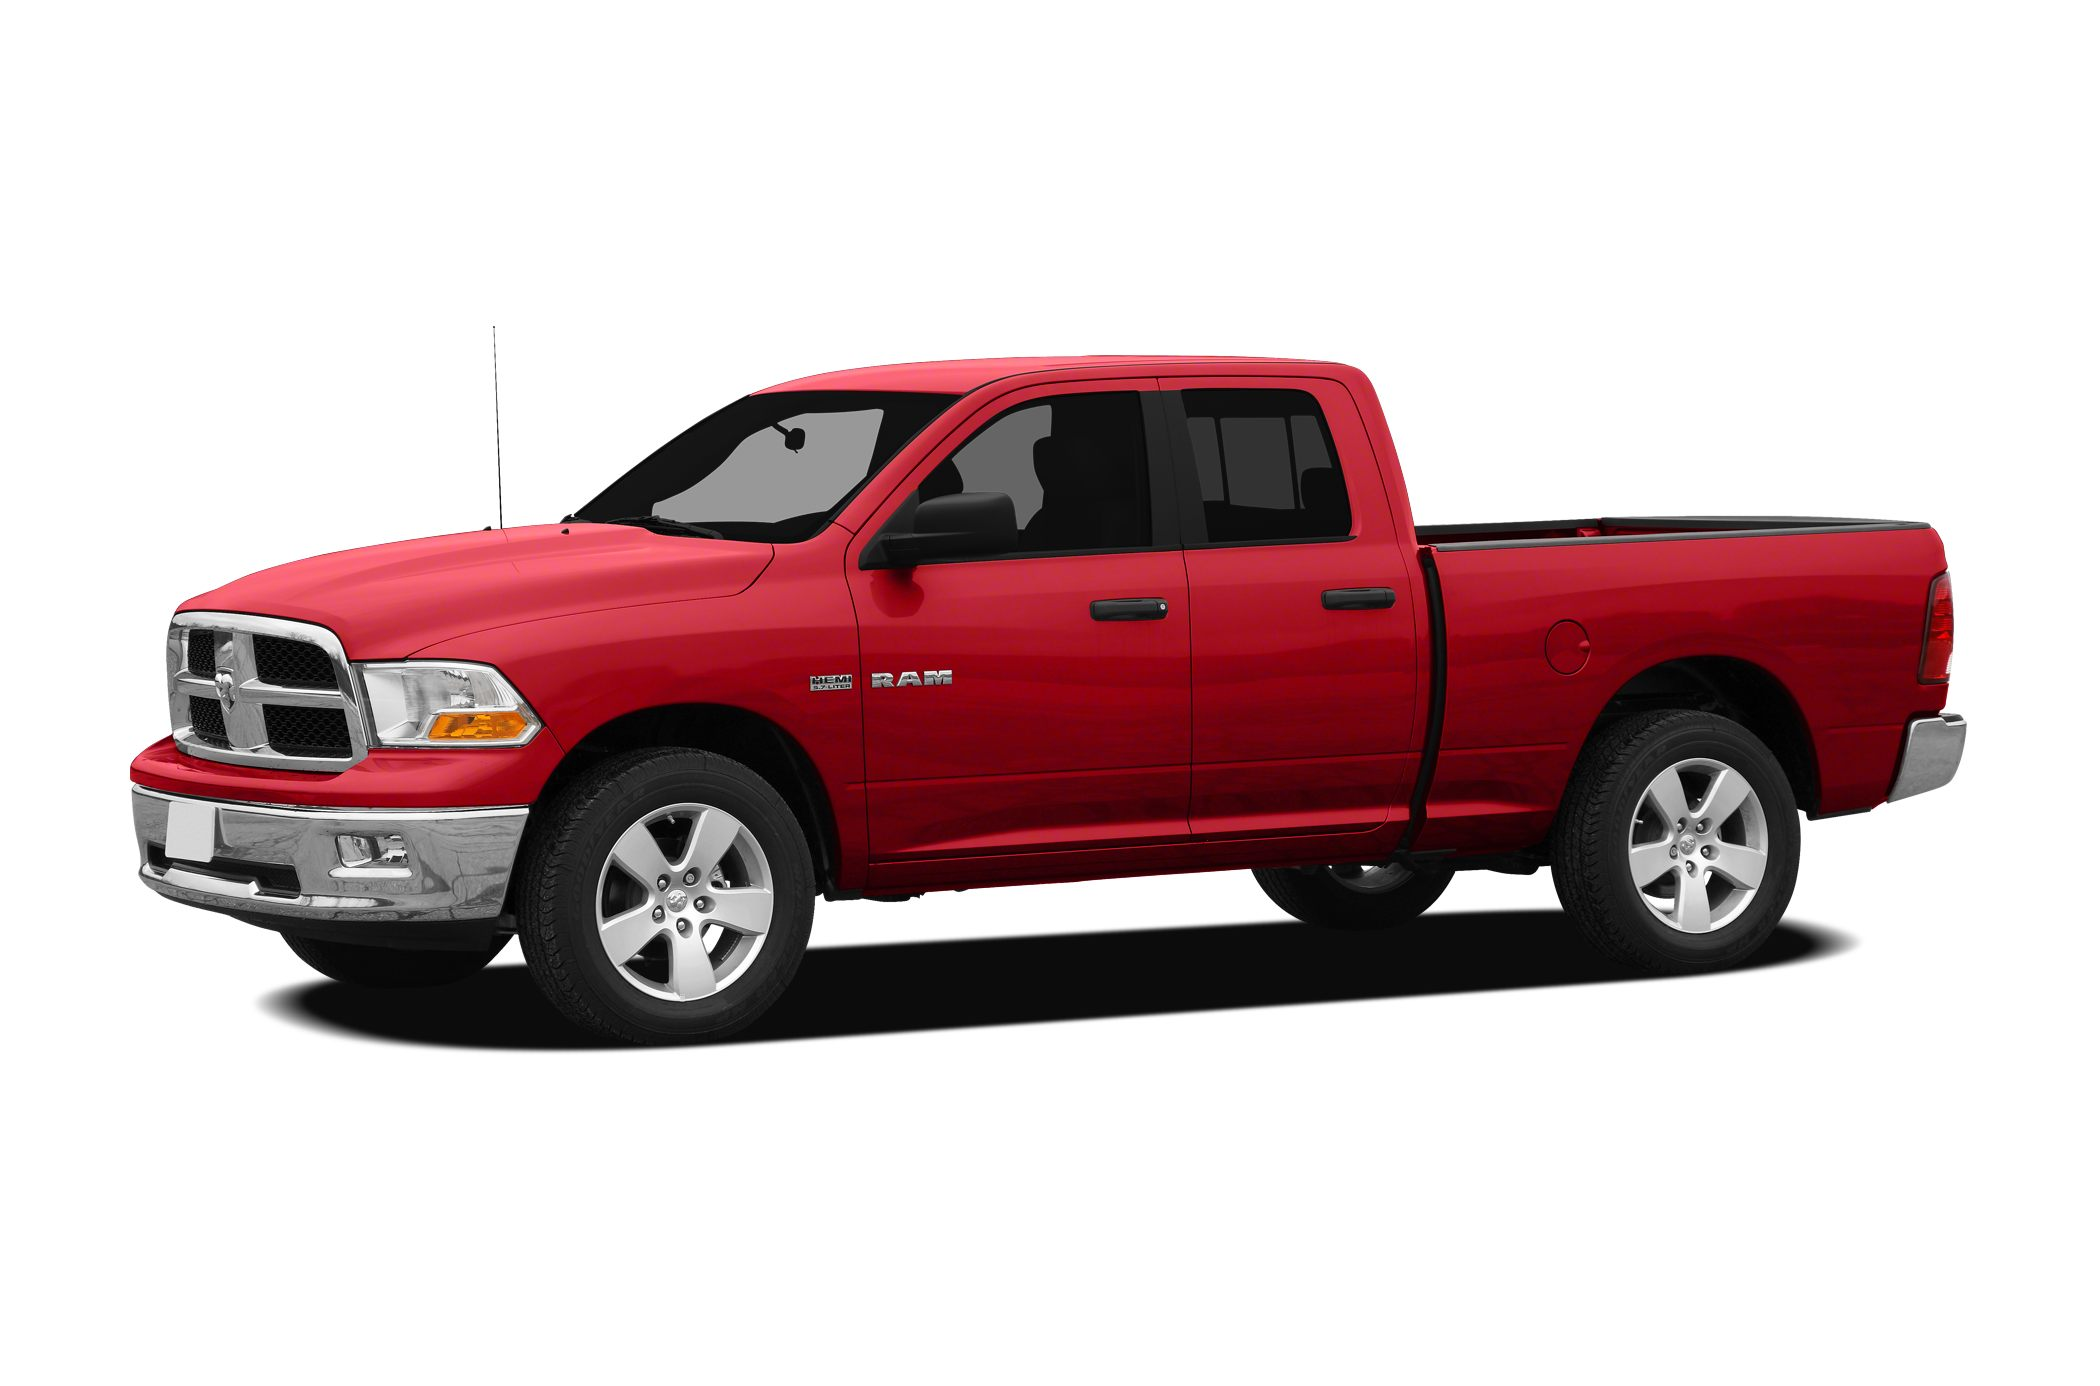 2011 Dodge Ram 1500 Laramie Crew Cab Pickup for sale in Hattiesburg for $30,995 with 58,785 miles